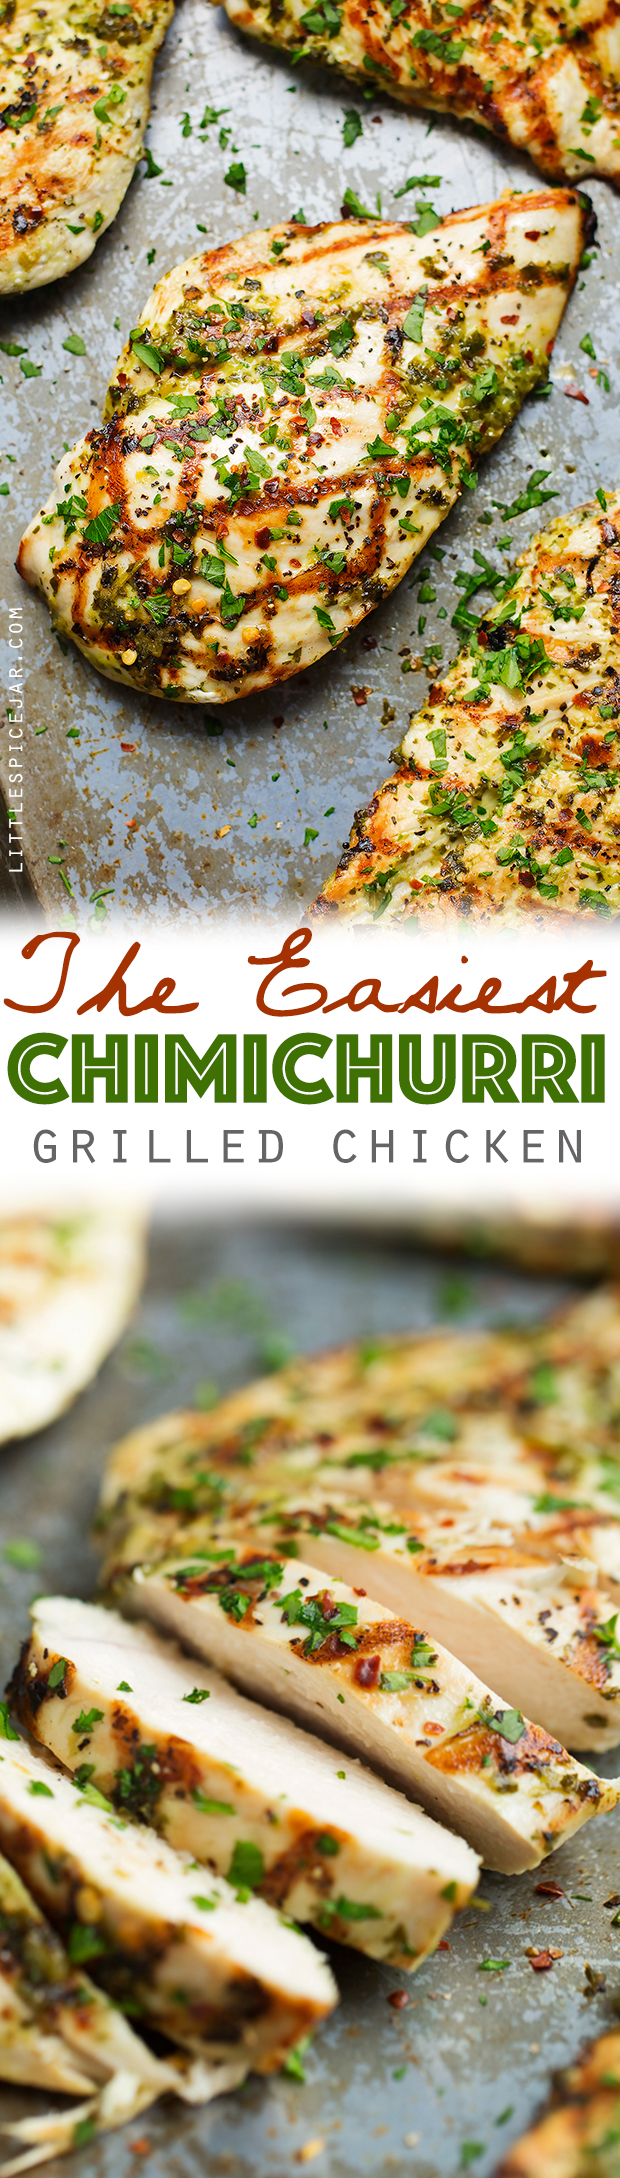 The-Easiest-Chimichurri-Grilled-Chicken-4